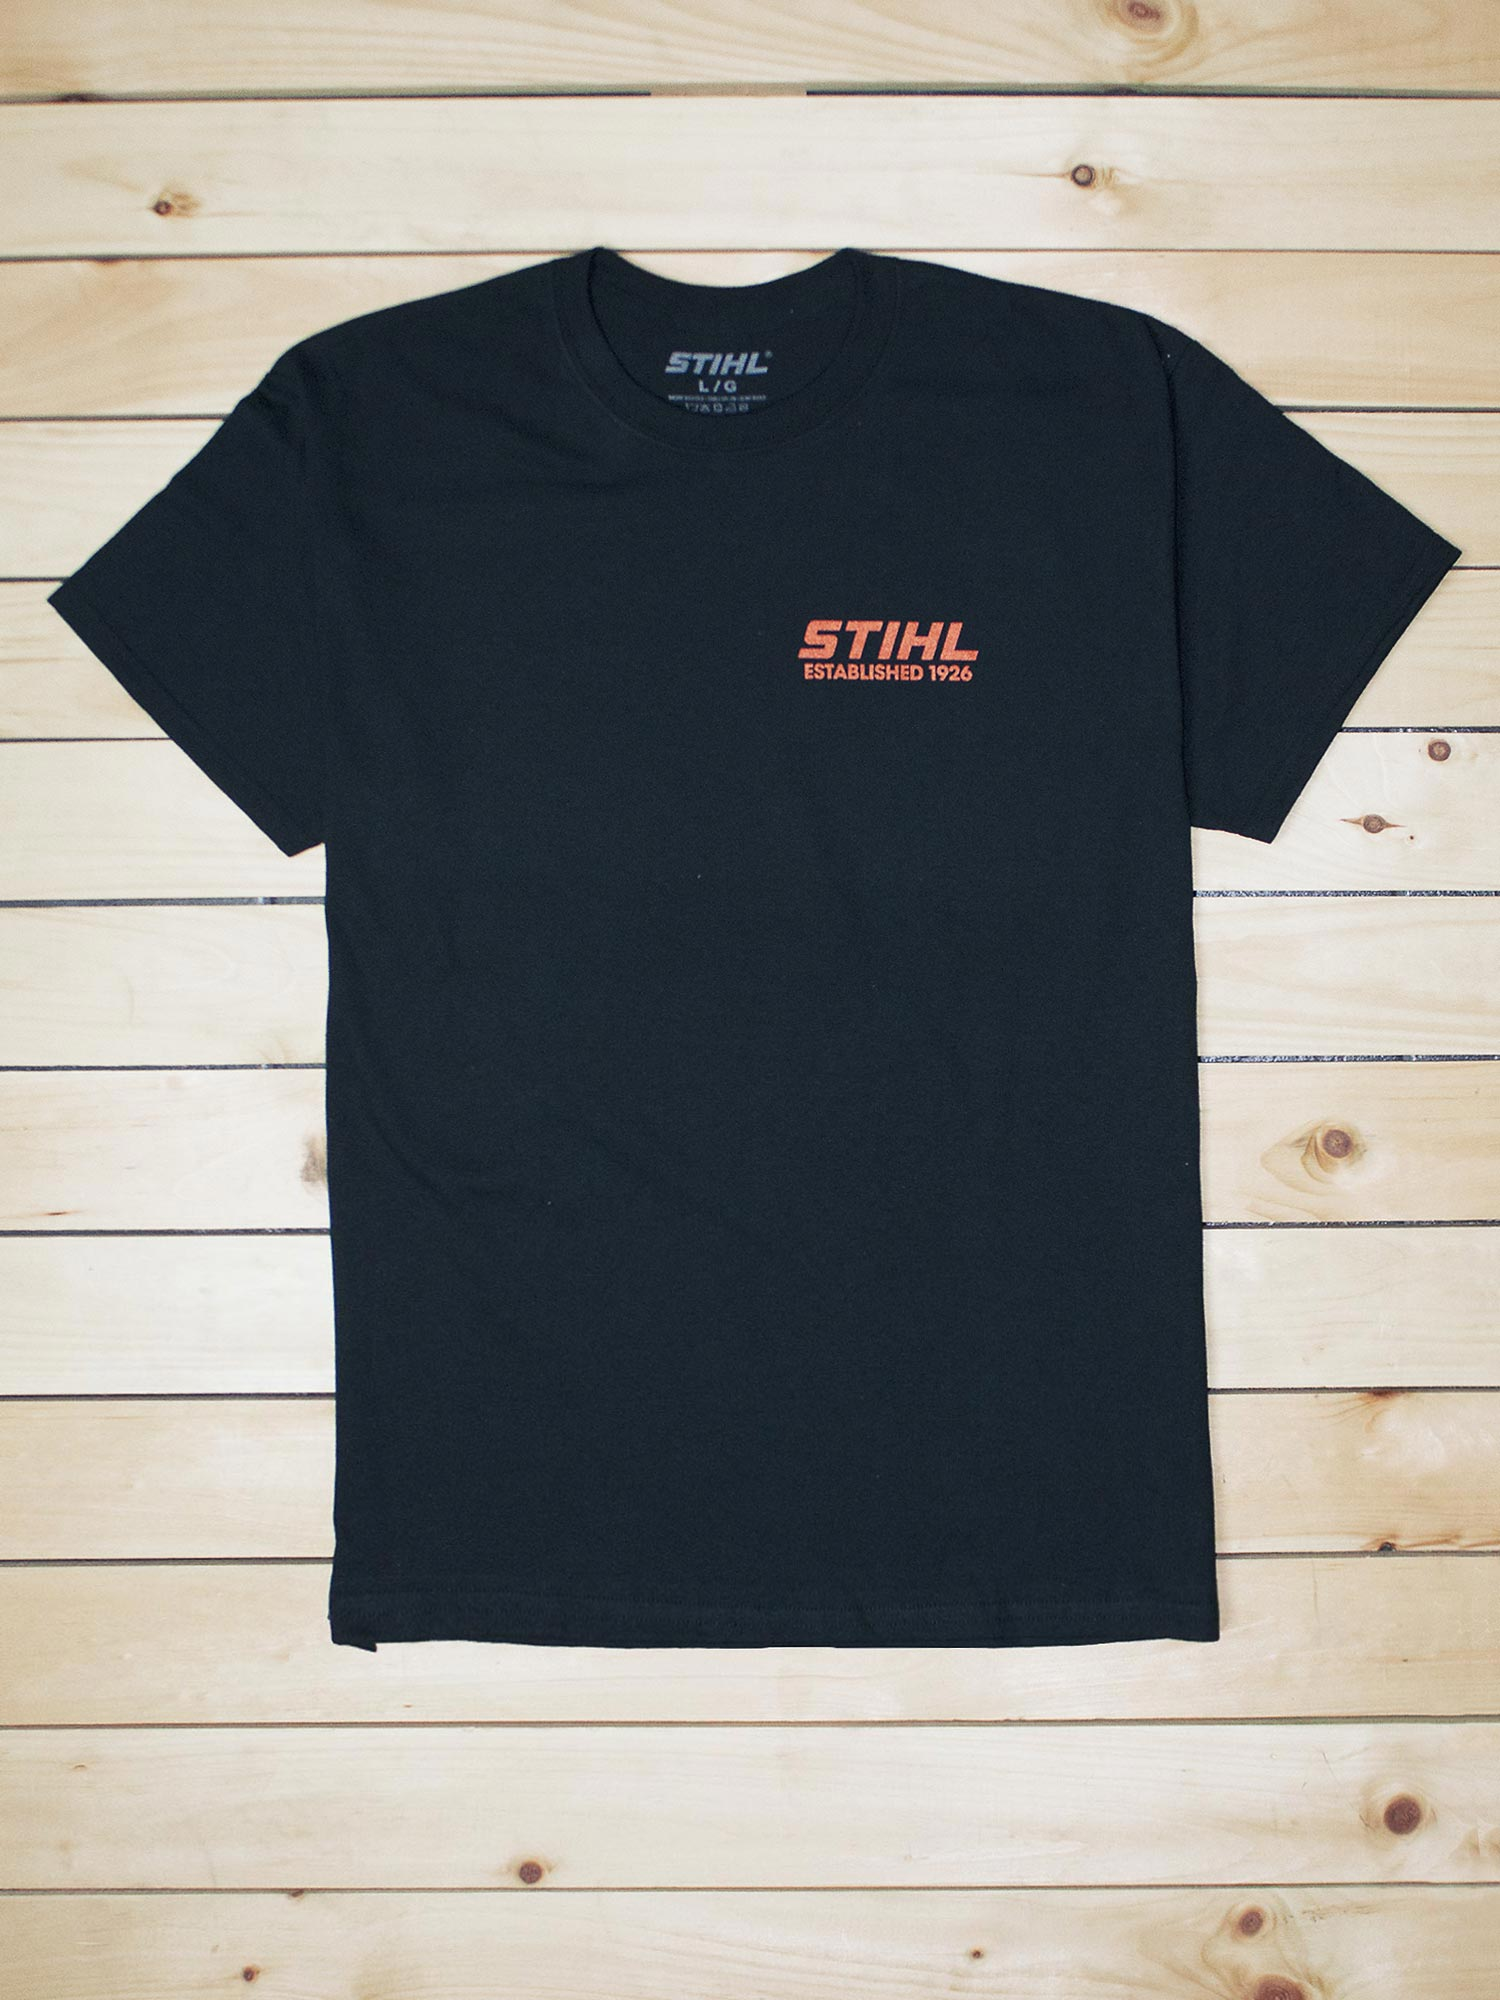 STIHL Saw Blades Collective Shirt